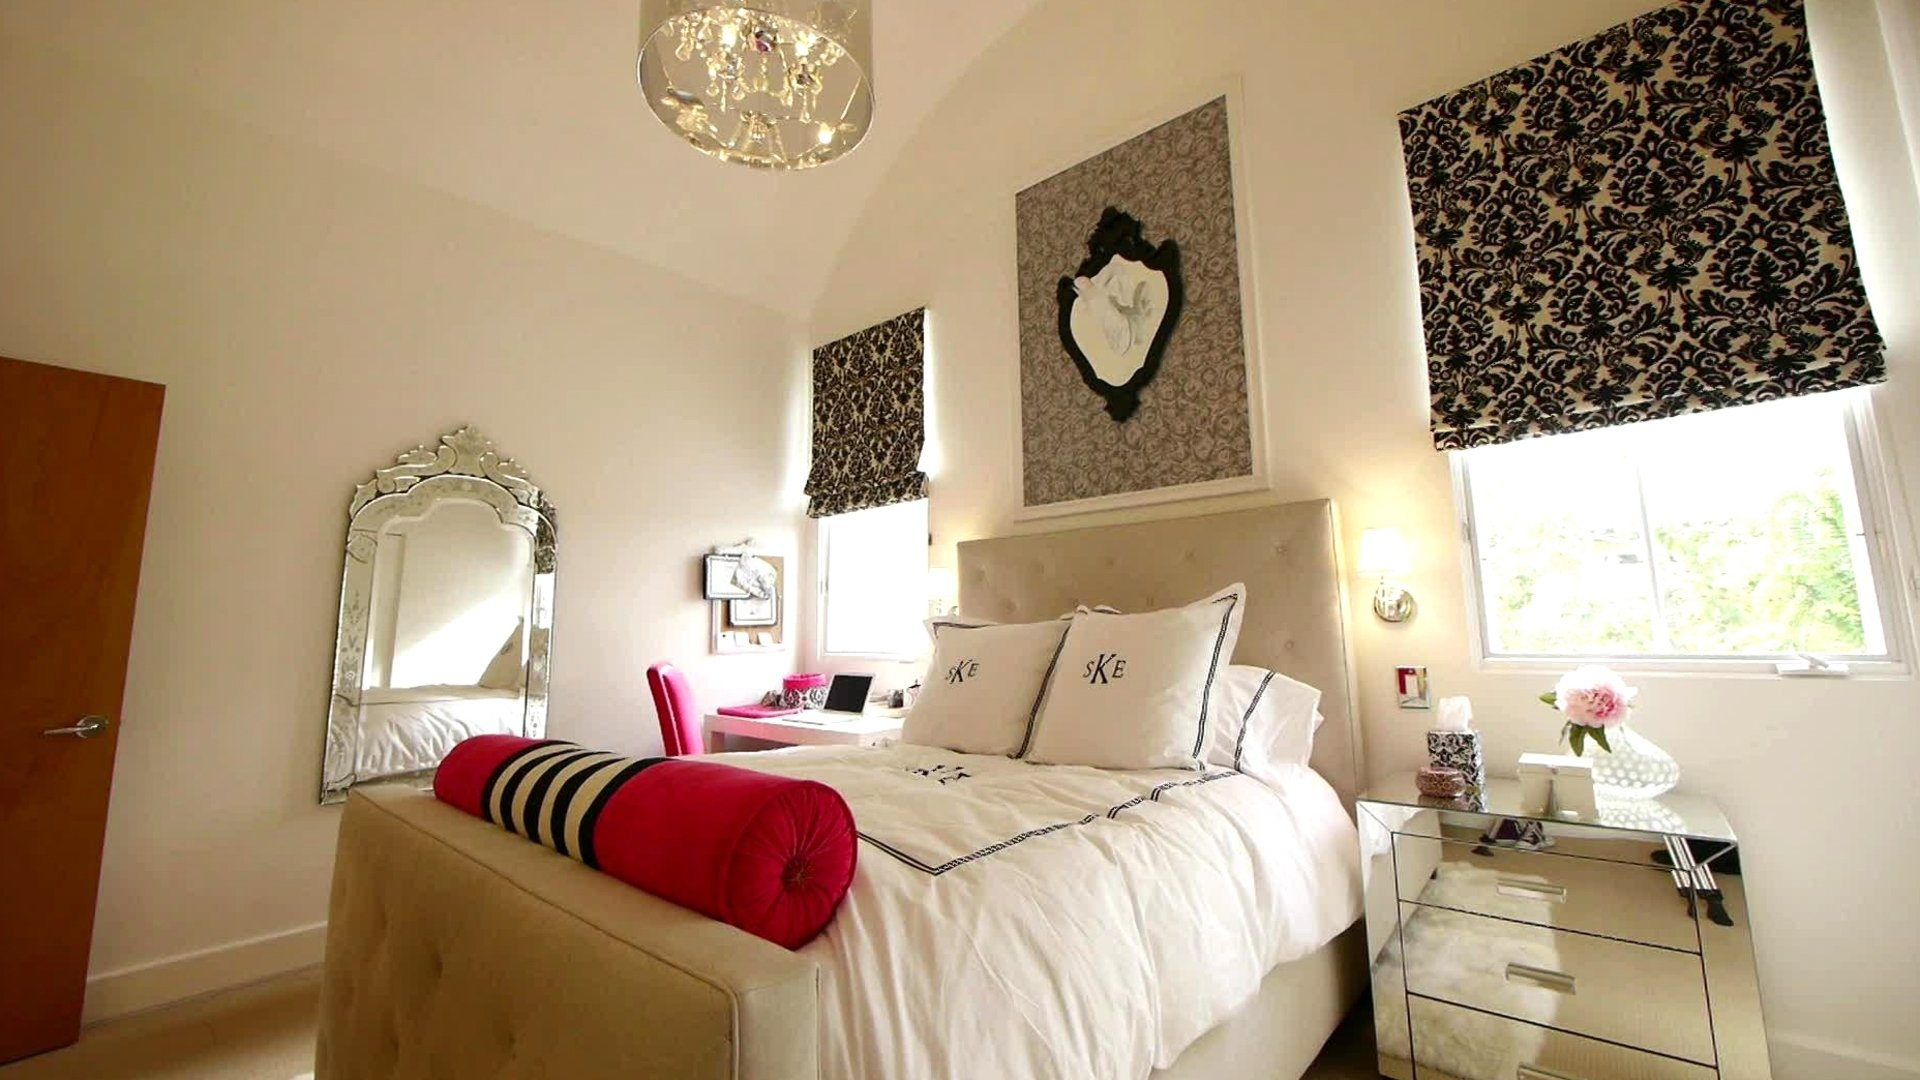 10 Perfect Ideas For Teenage Girl Bedroom teen bedrooms ideas for decorating teen rooms hgtv 7 2020